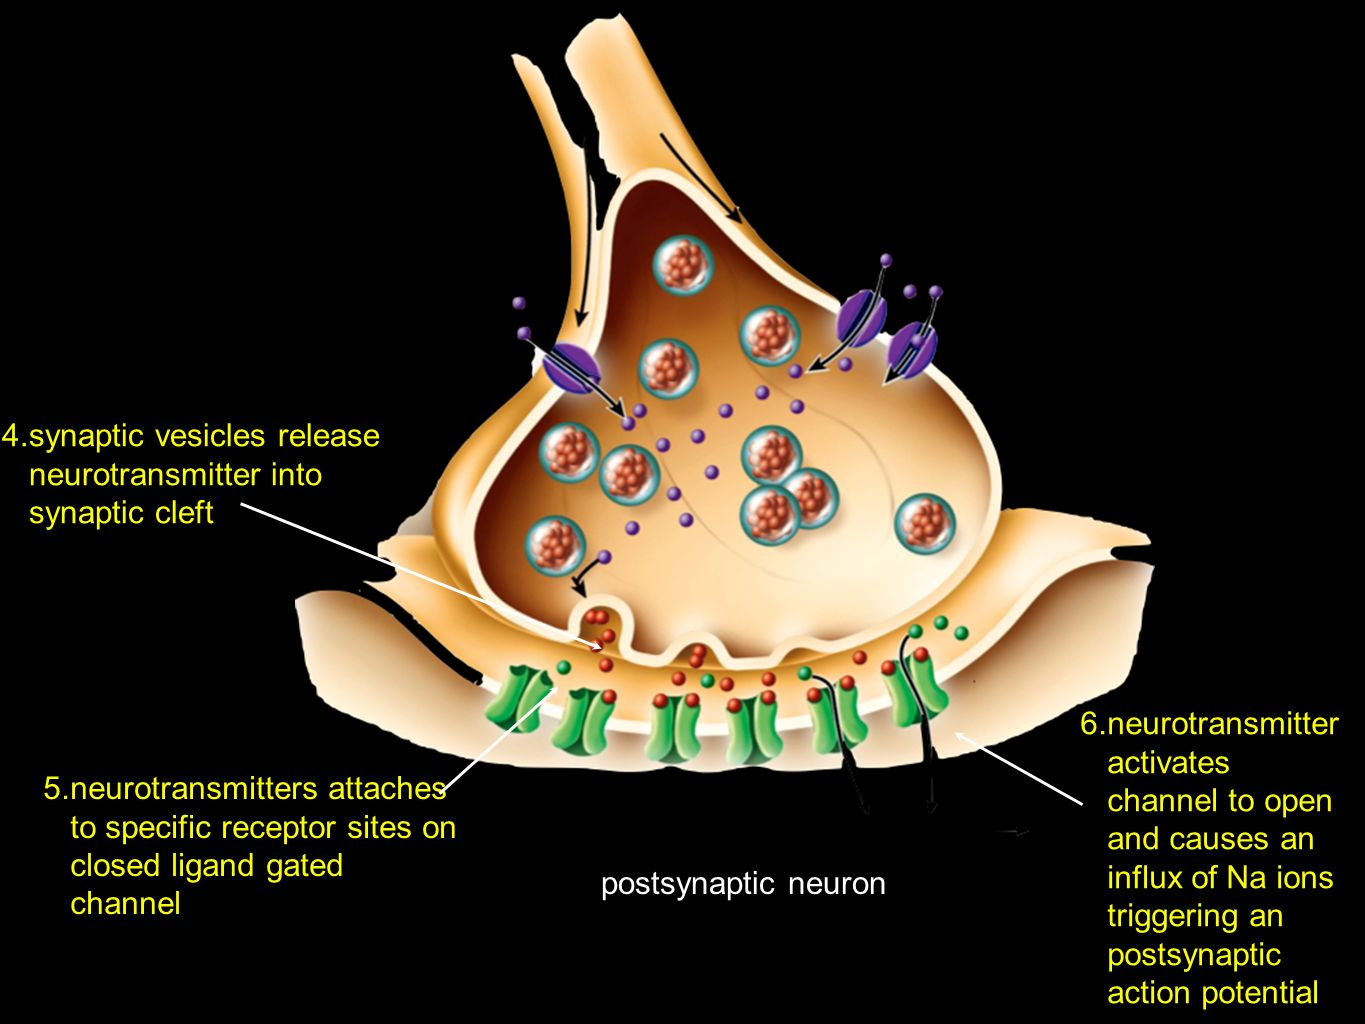 synaptic vesicles release neurotransmitter into synaptic cleft